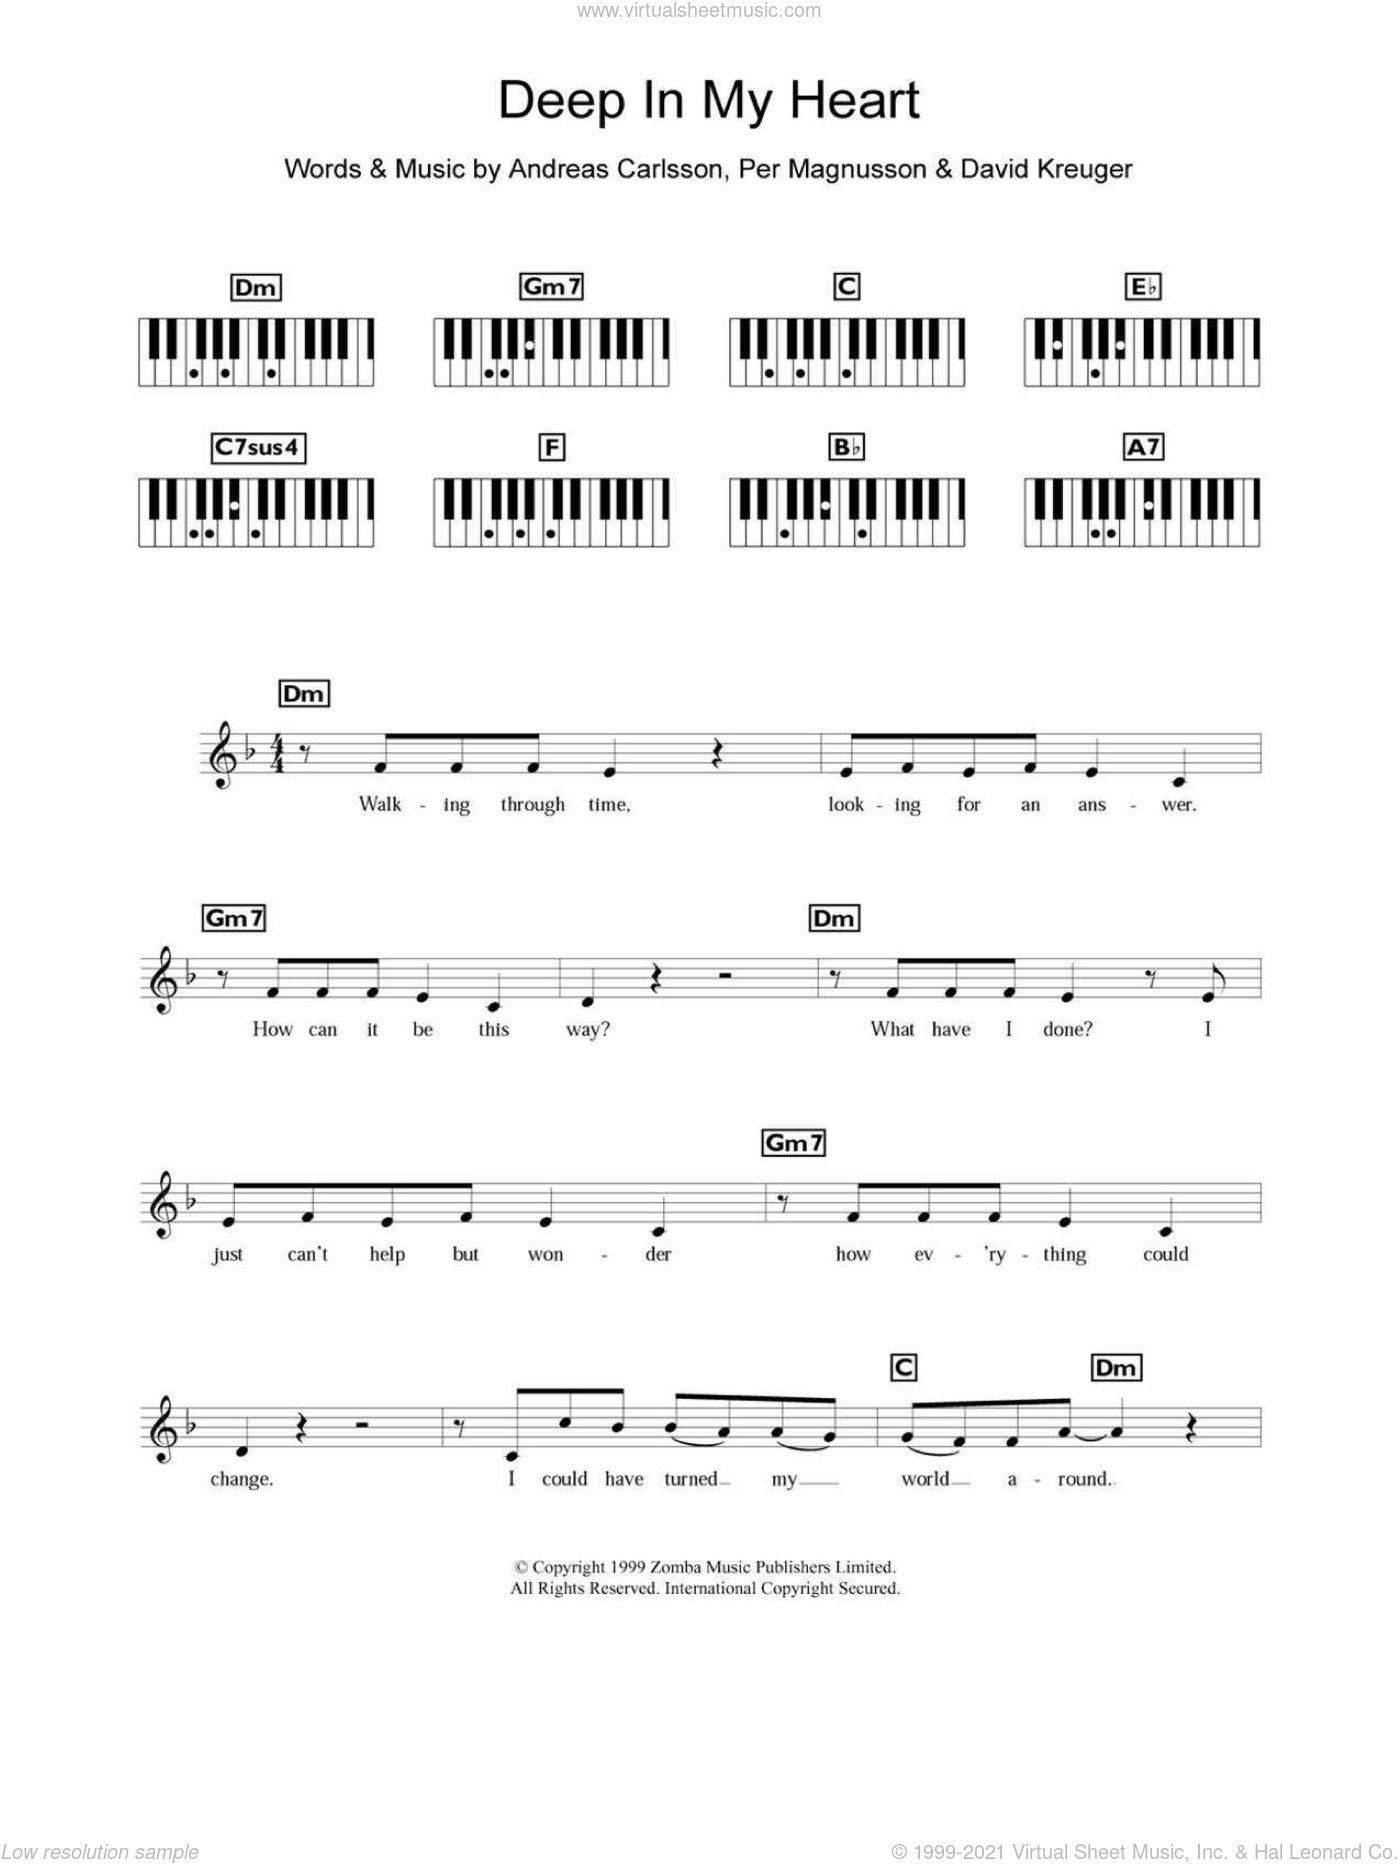 Deep In My Heart sheet music for piano solo (chords, lyrics, melody) by Britney Spears, Andreas Carlsson, David Kreuger and Per Magnusson, intermediate piano (chords, lyrics, melody)